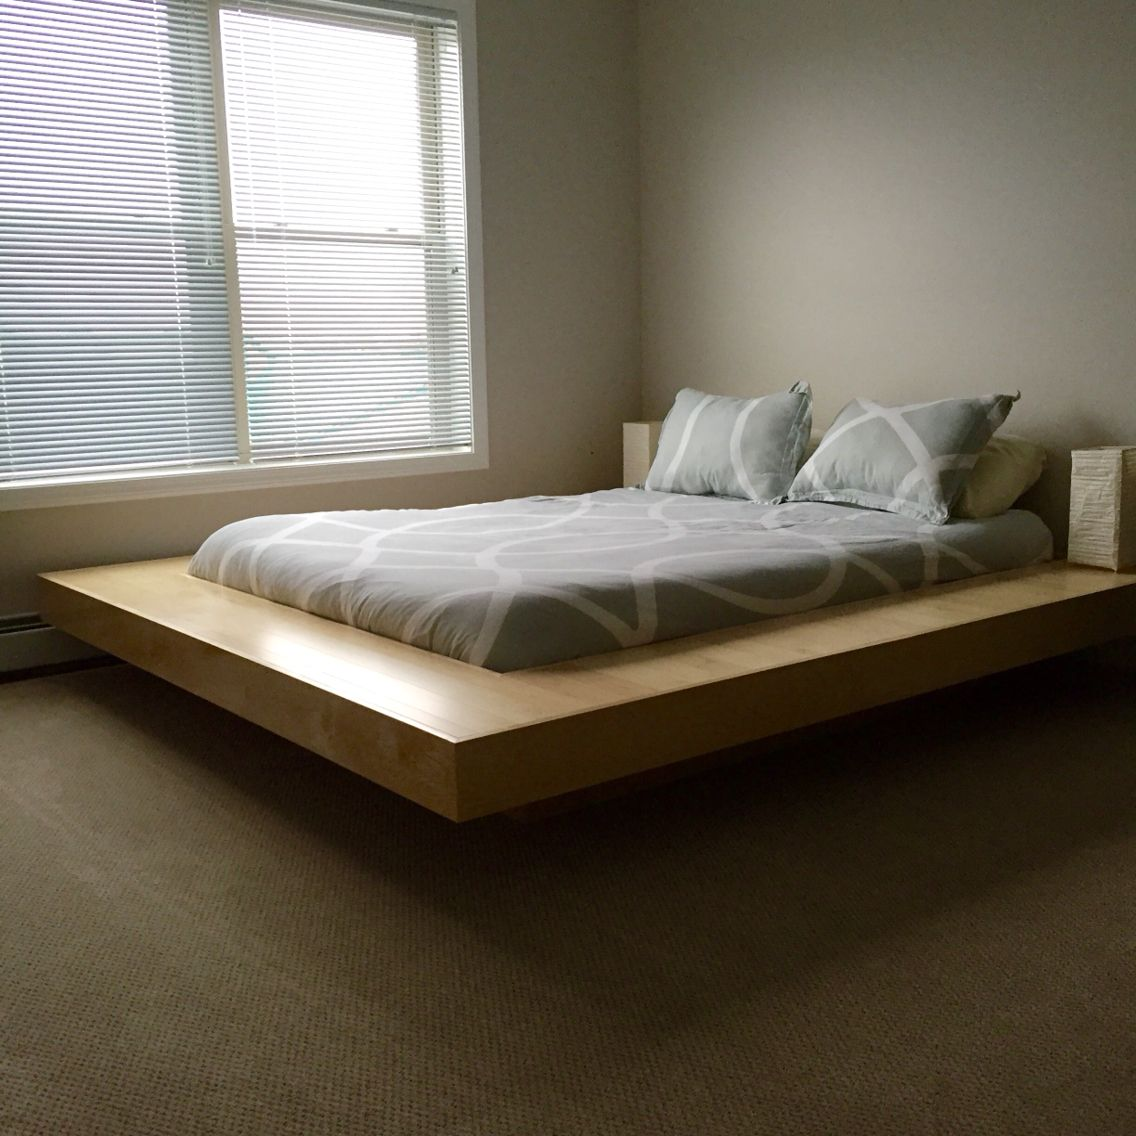 Maple wood floating platform bed frame diy floating Wood platform bed